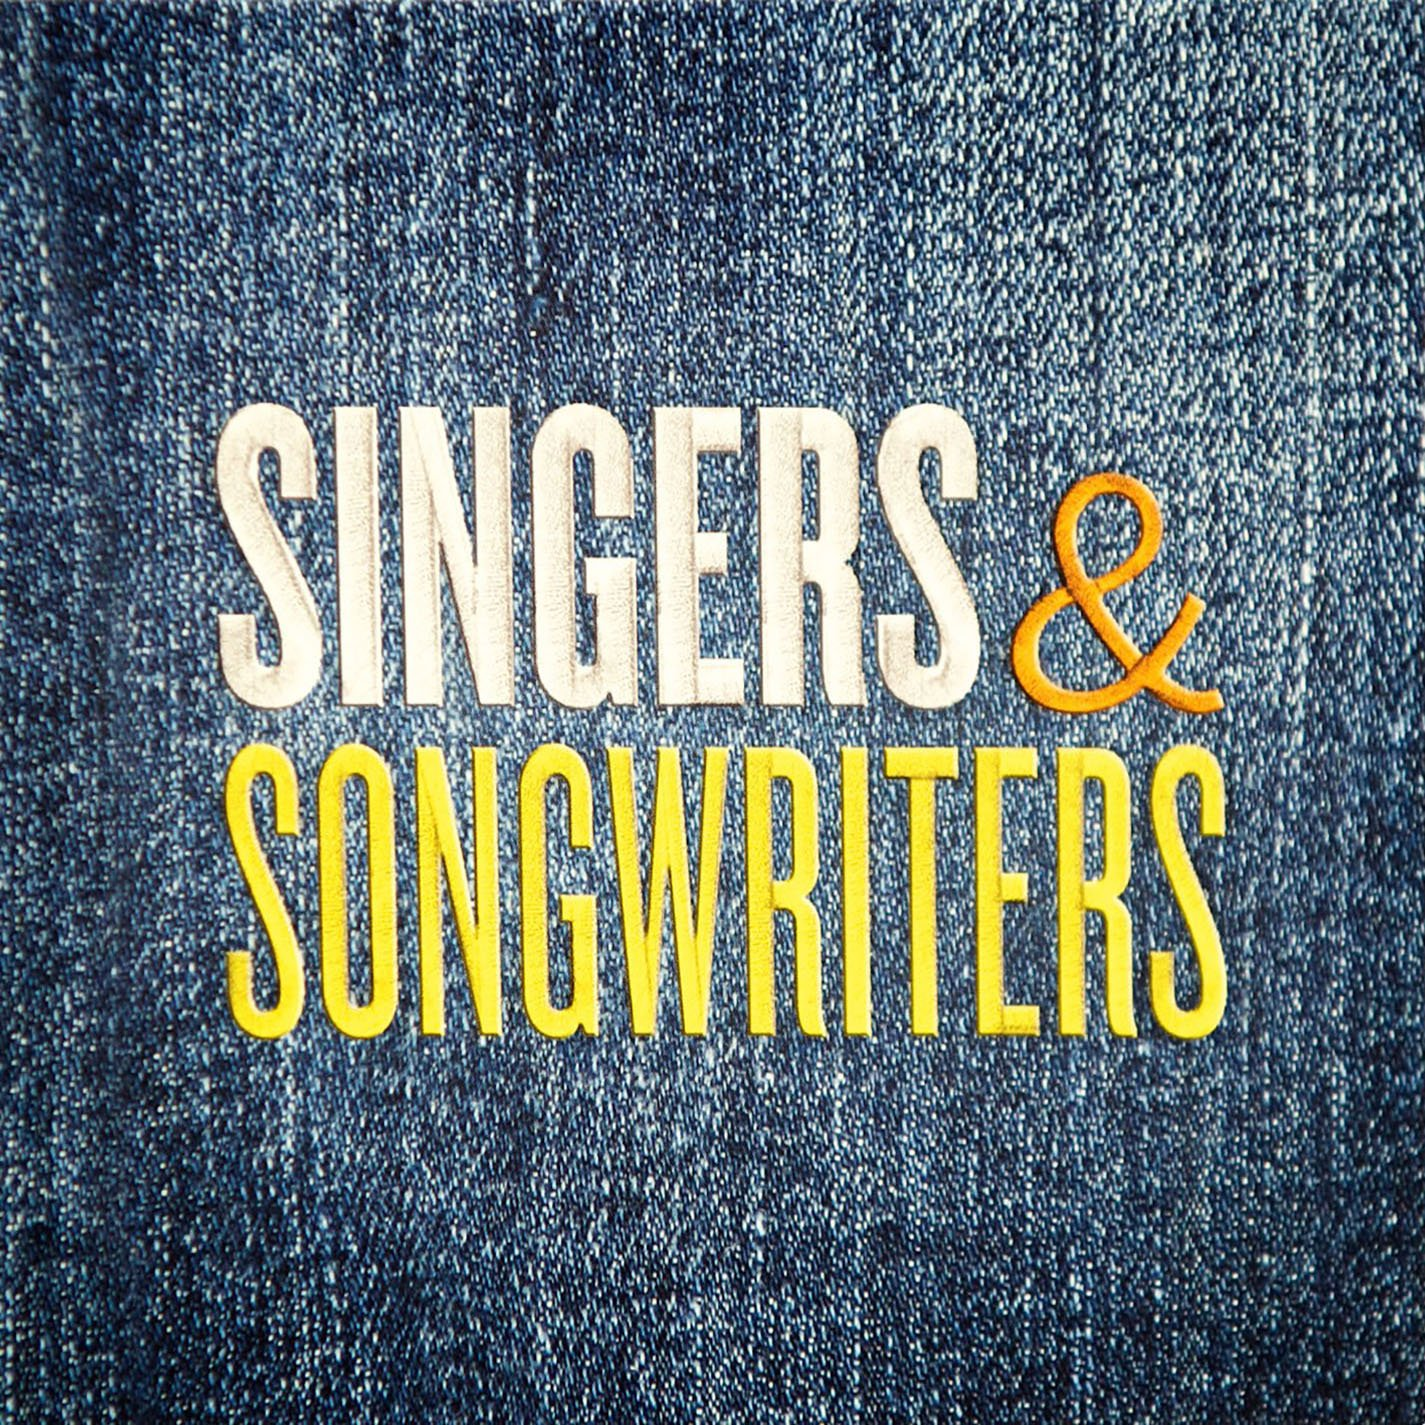 Singers & Songwriters                                                                                                                                                                                                                                                                                                                                                                                                <span class=